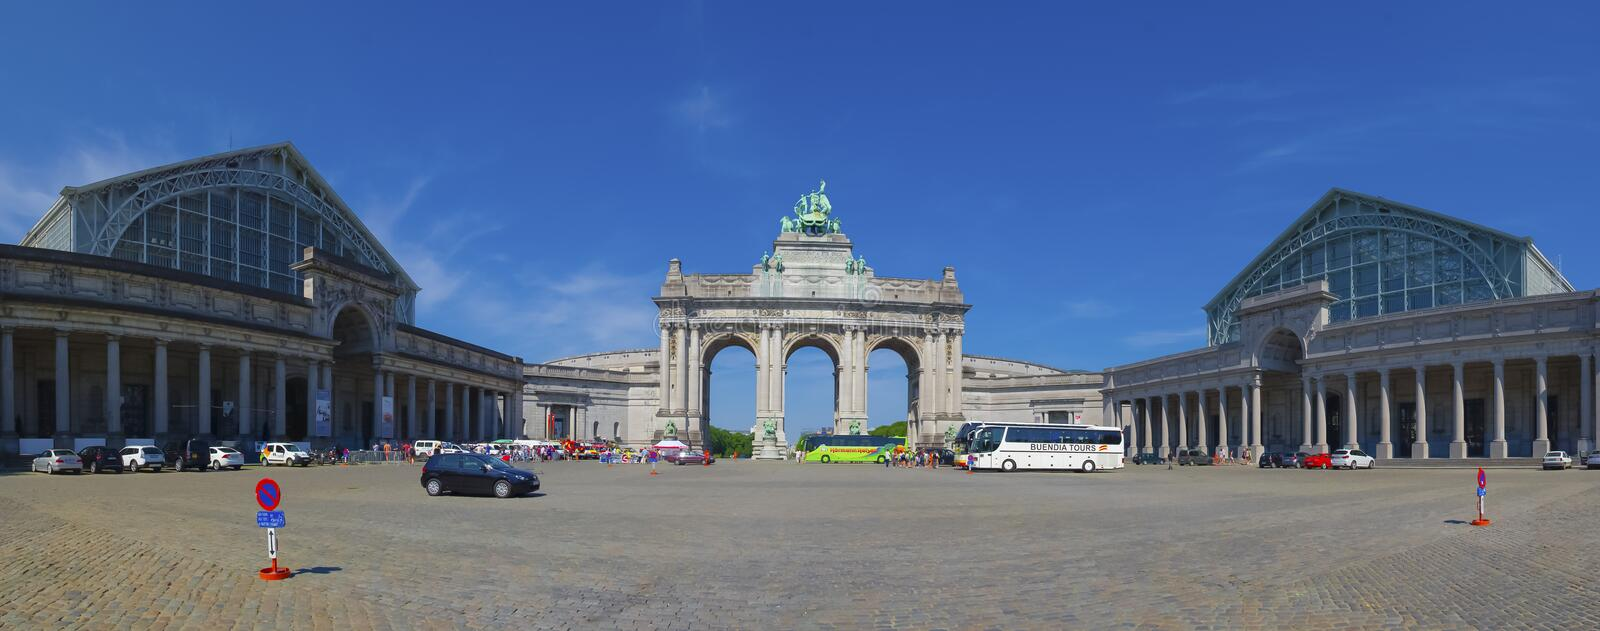 The Triumphal arch (Arc de Triomphe) in Brussels royalty free stock image